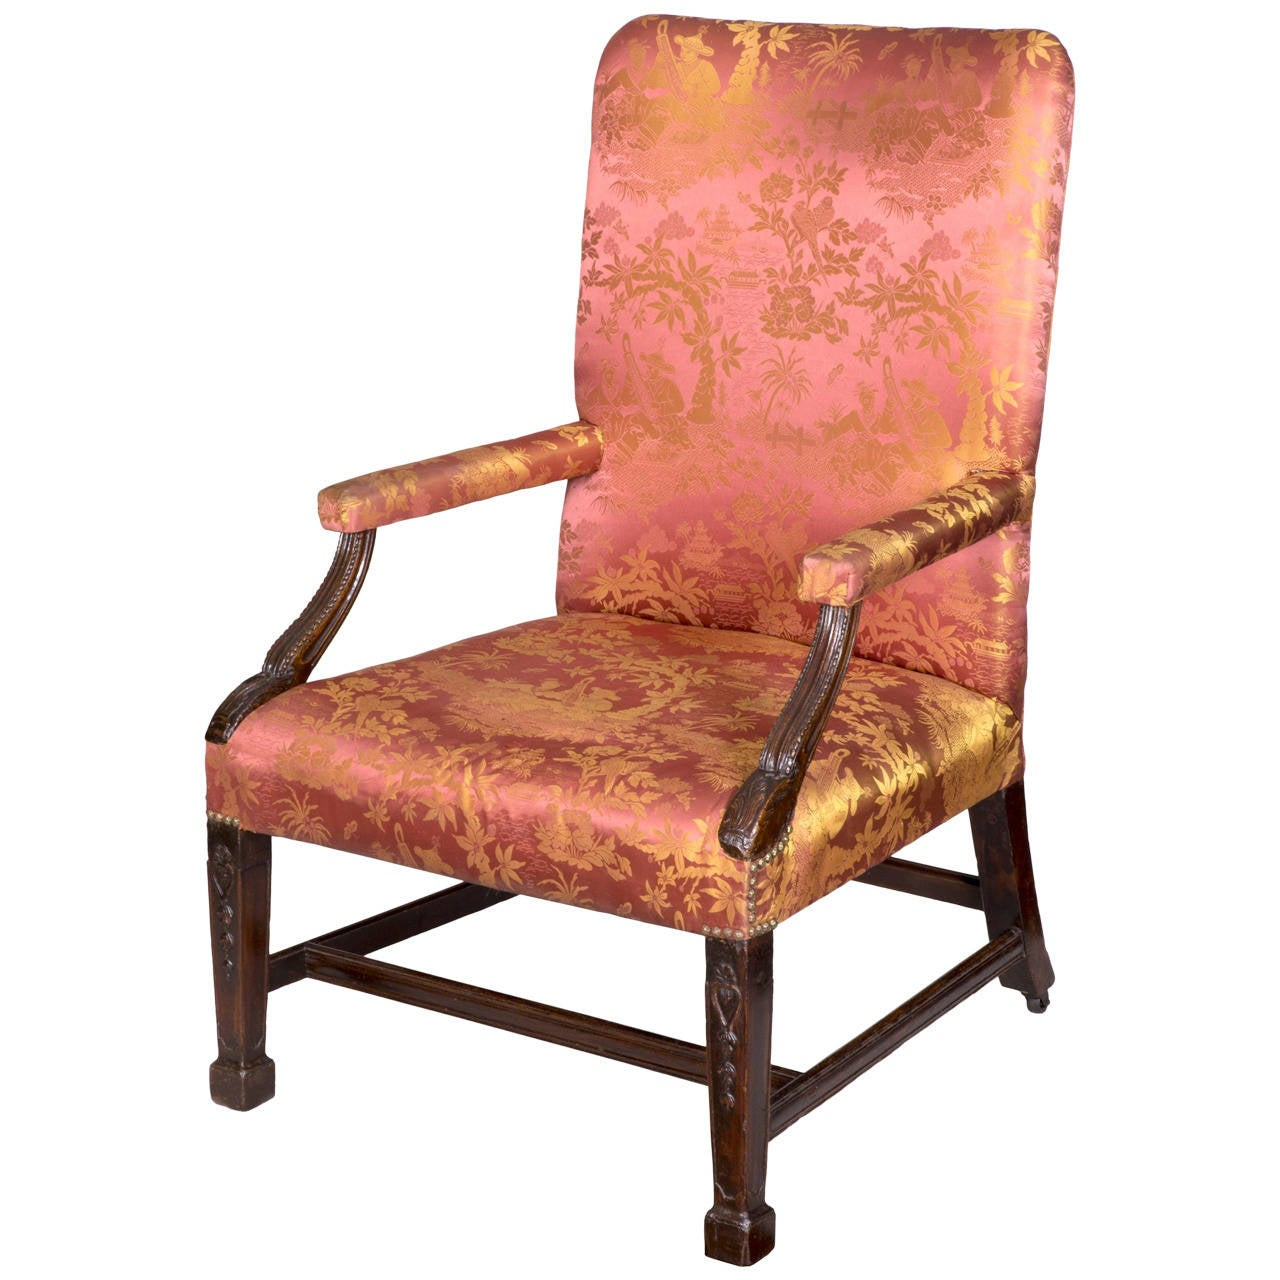 Chippendale arm chair - Chippendale Or George Ii Carved Mahogany Armchair With Marlboro Legs Circa 1780 1